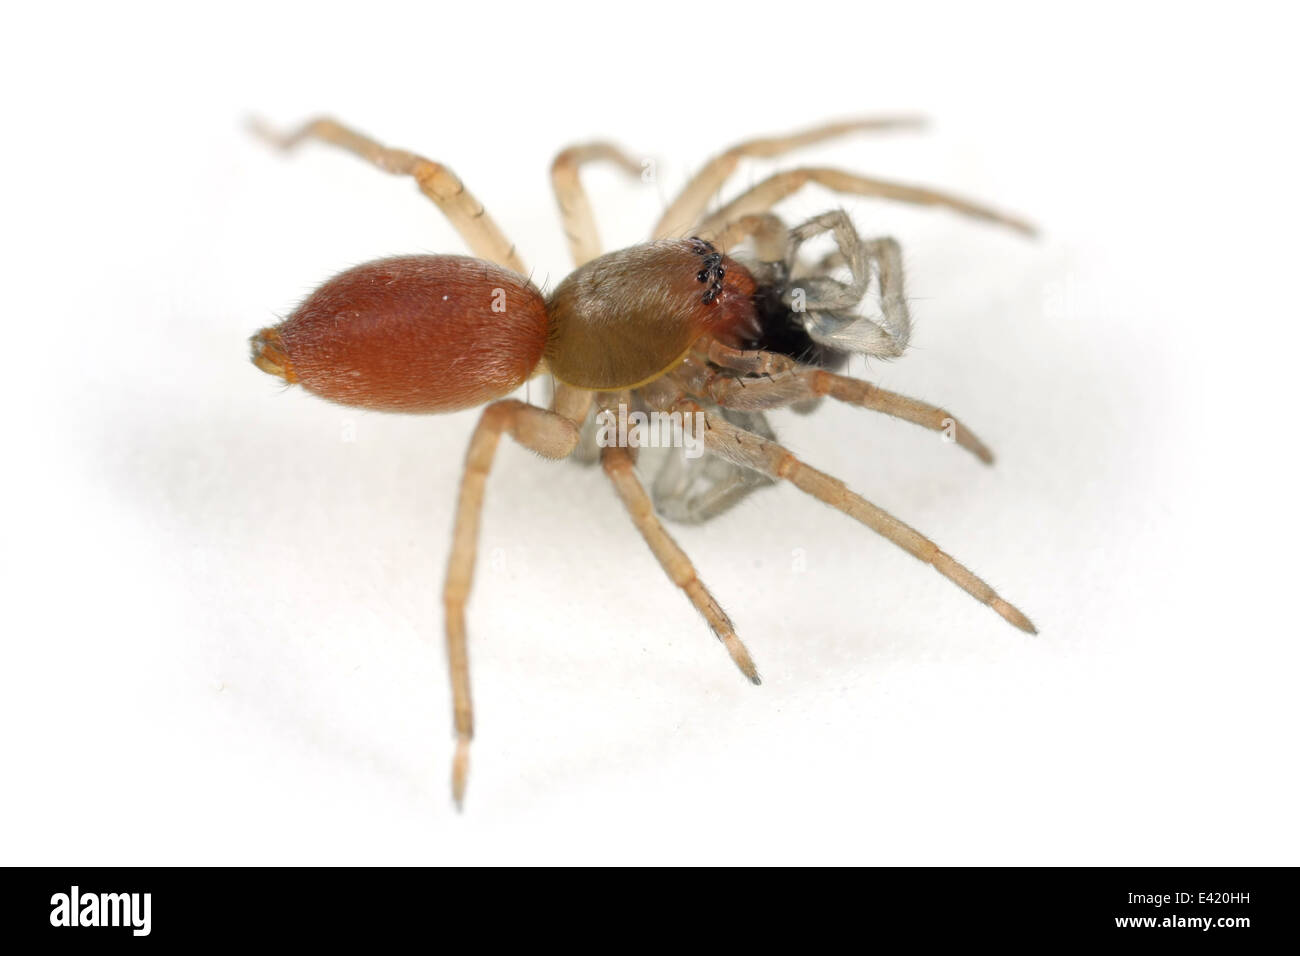 Northern sac spider (Clubiona trivialis), part of the family Clubionidae - Sac spiders. Isolated on white background. With prey. Stock Photo